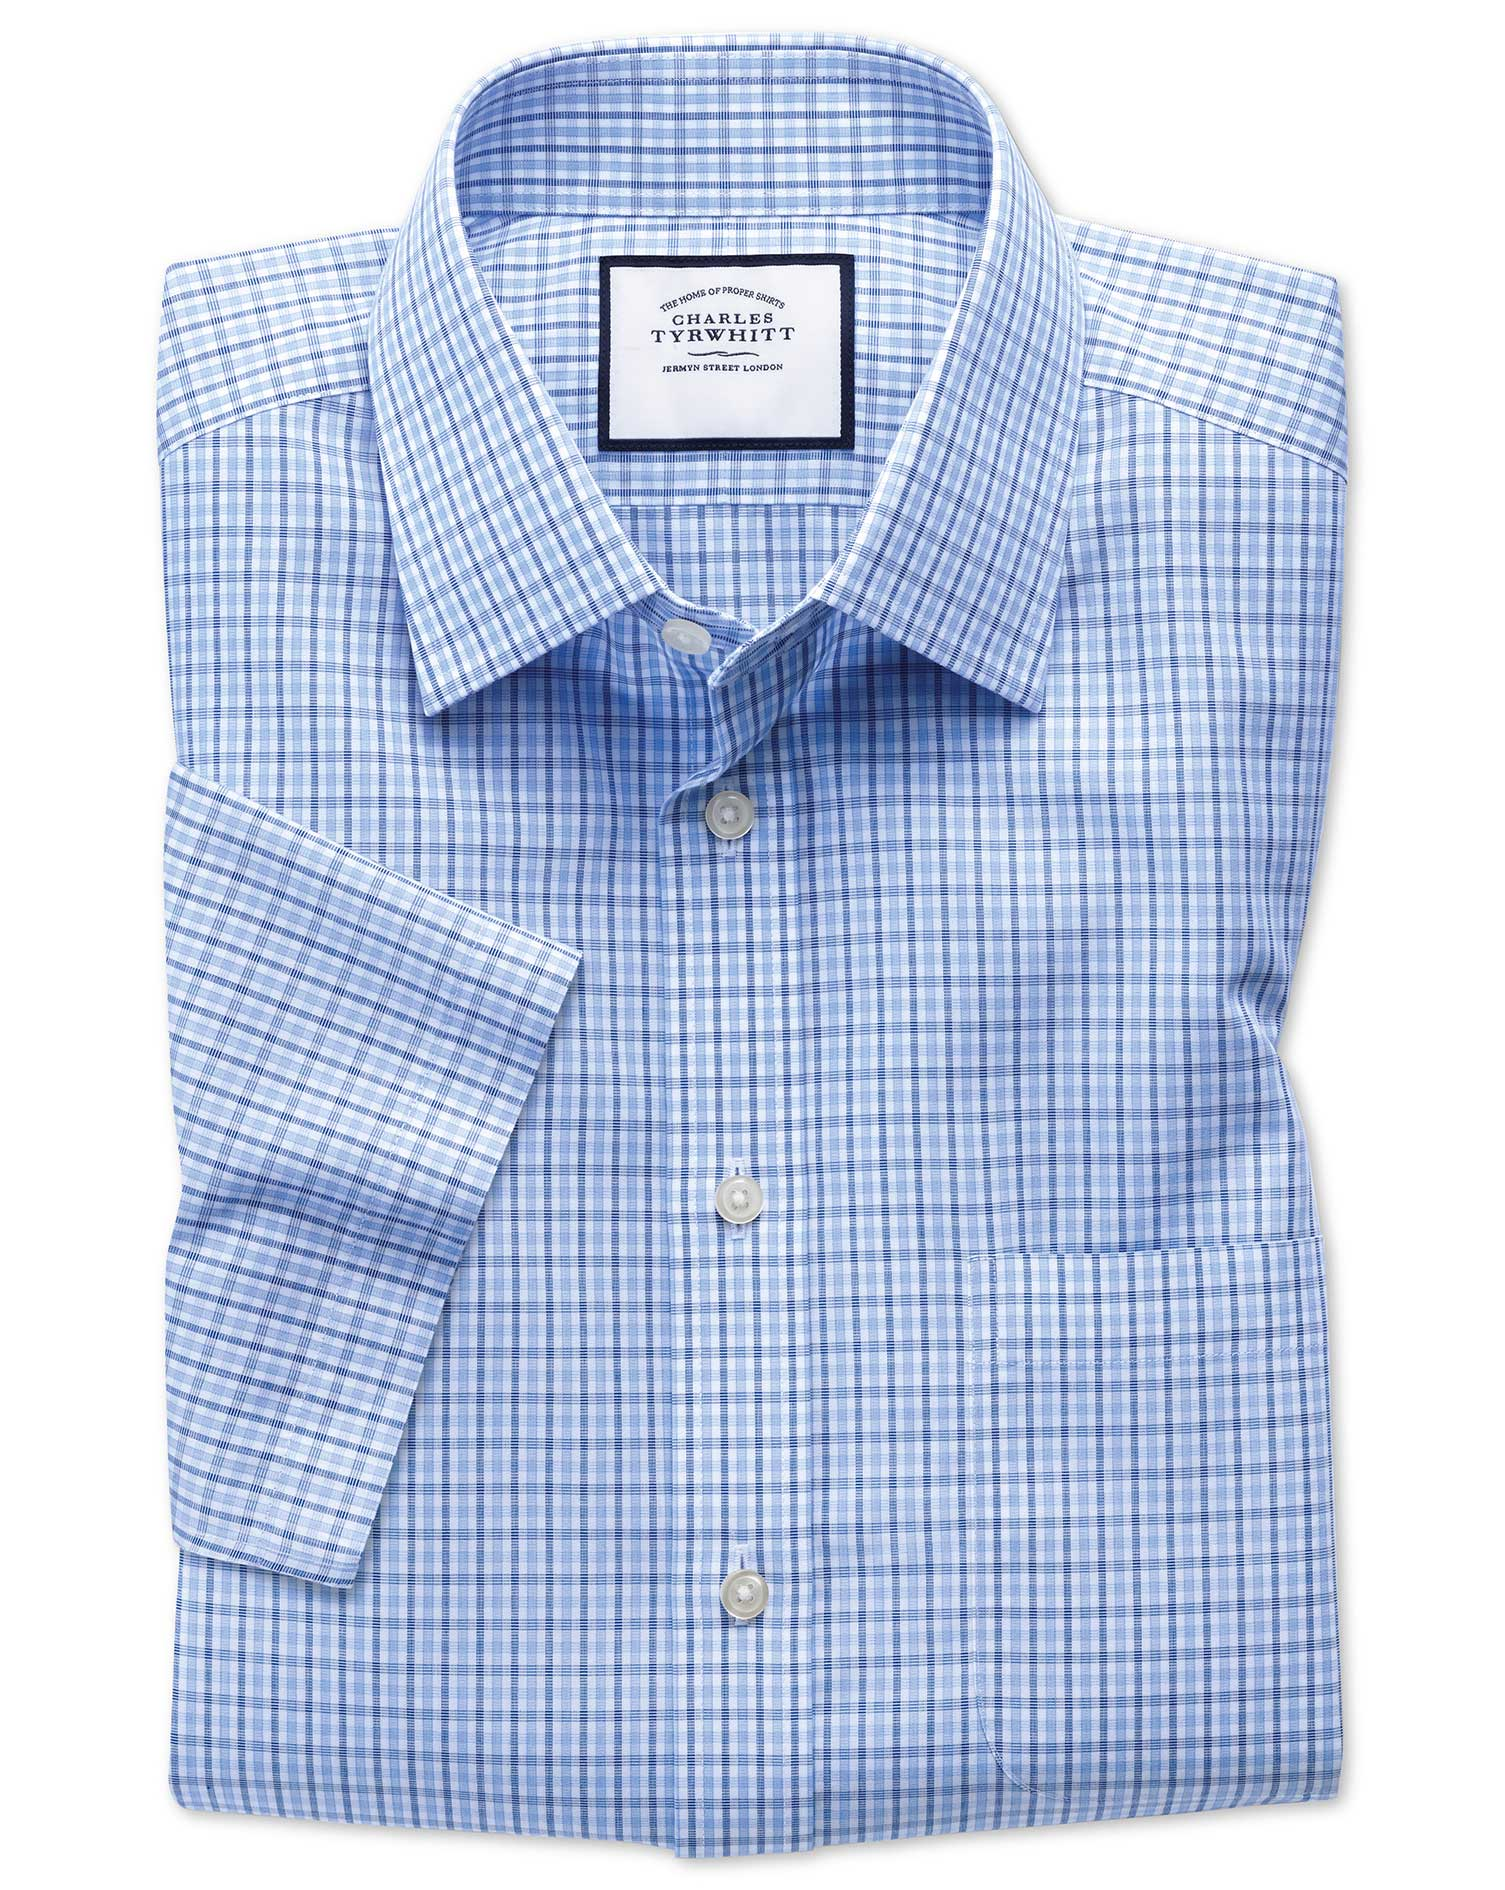 Slim Fit Non-Iron Poplin Short Sleeve Blue and Sky Blue Cotton Formal Shirt Size 17.5/Short by Charl